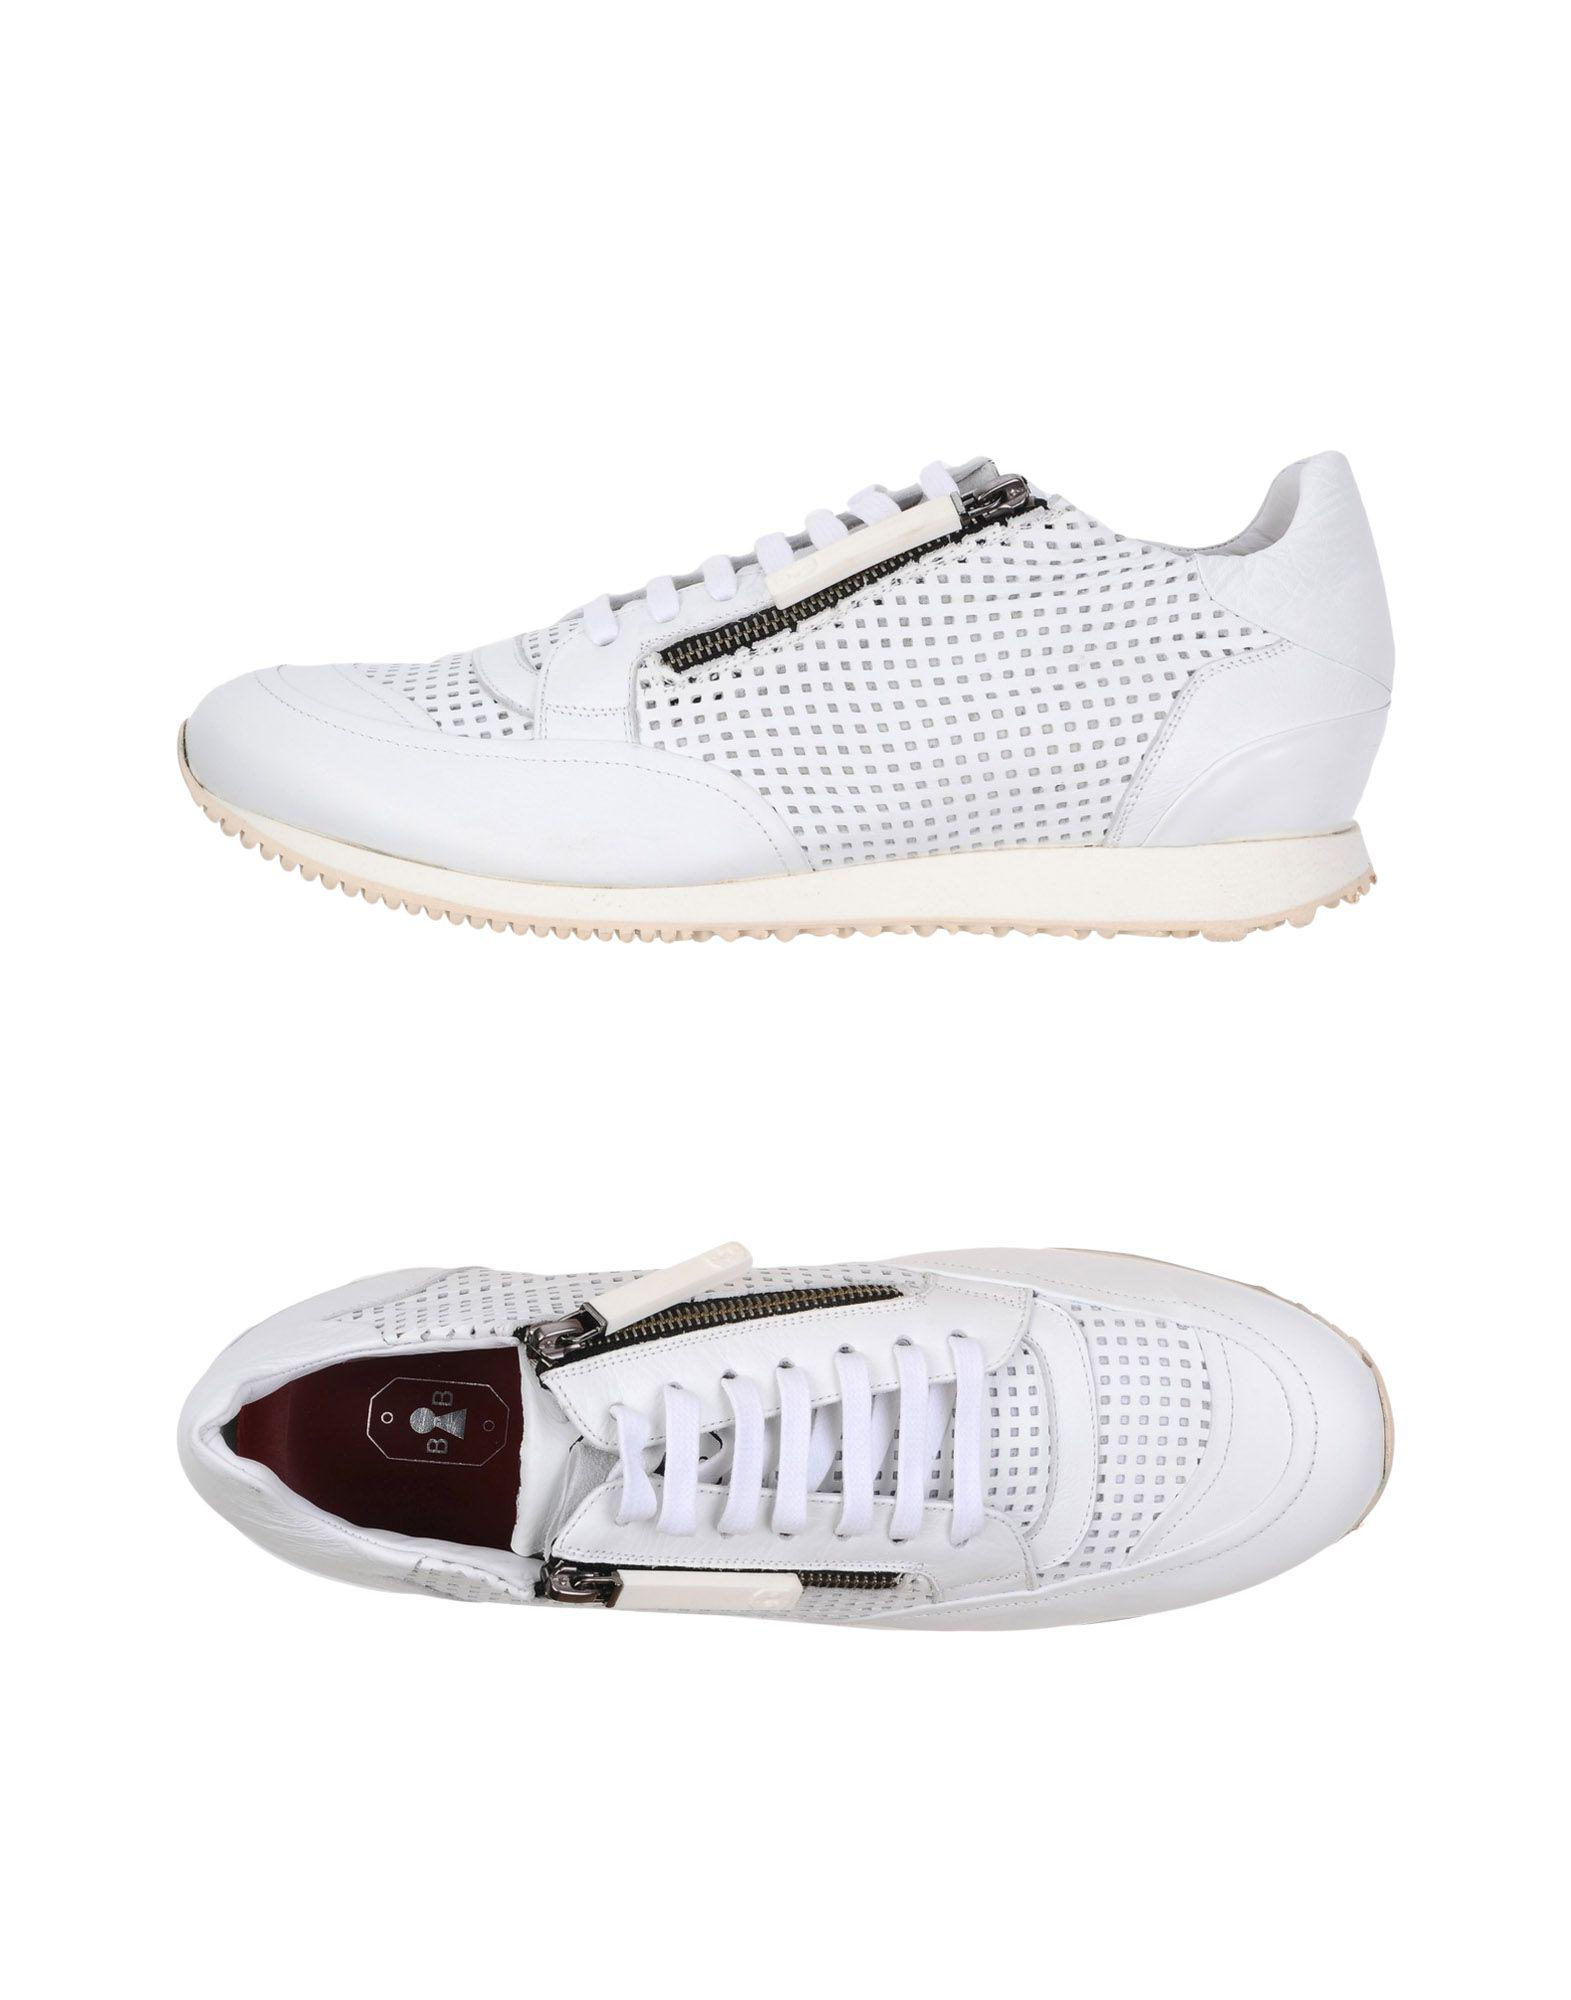 Cheap Popular Cheap Sneakernews FOOTWEAR - Low-tops & sneakers Laboratorigarbo 100% Authentic Sale Free Shipping toacRGI